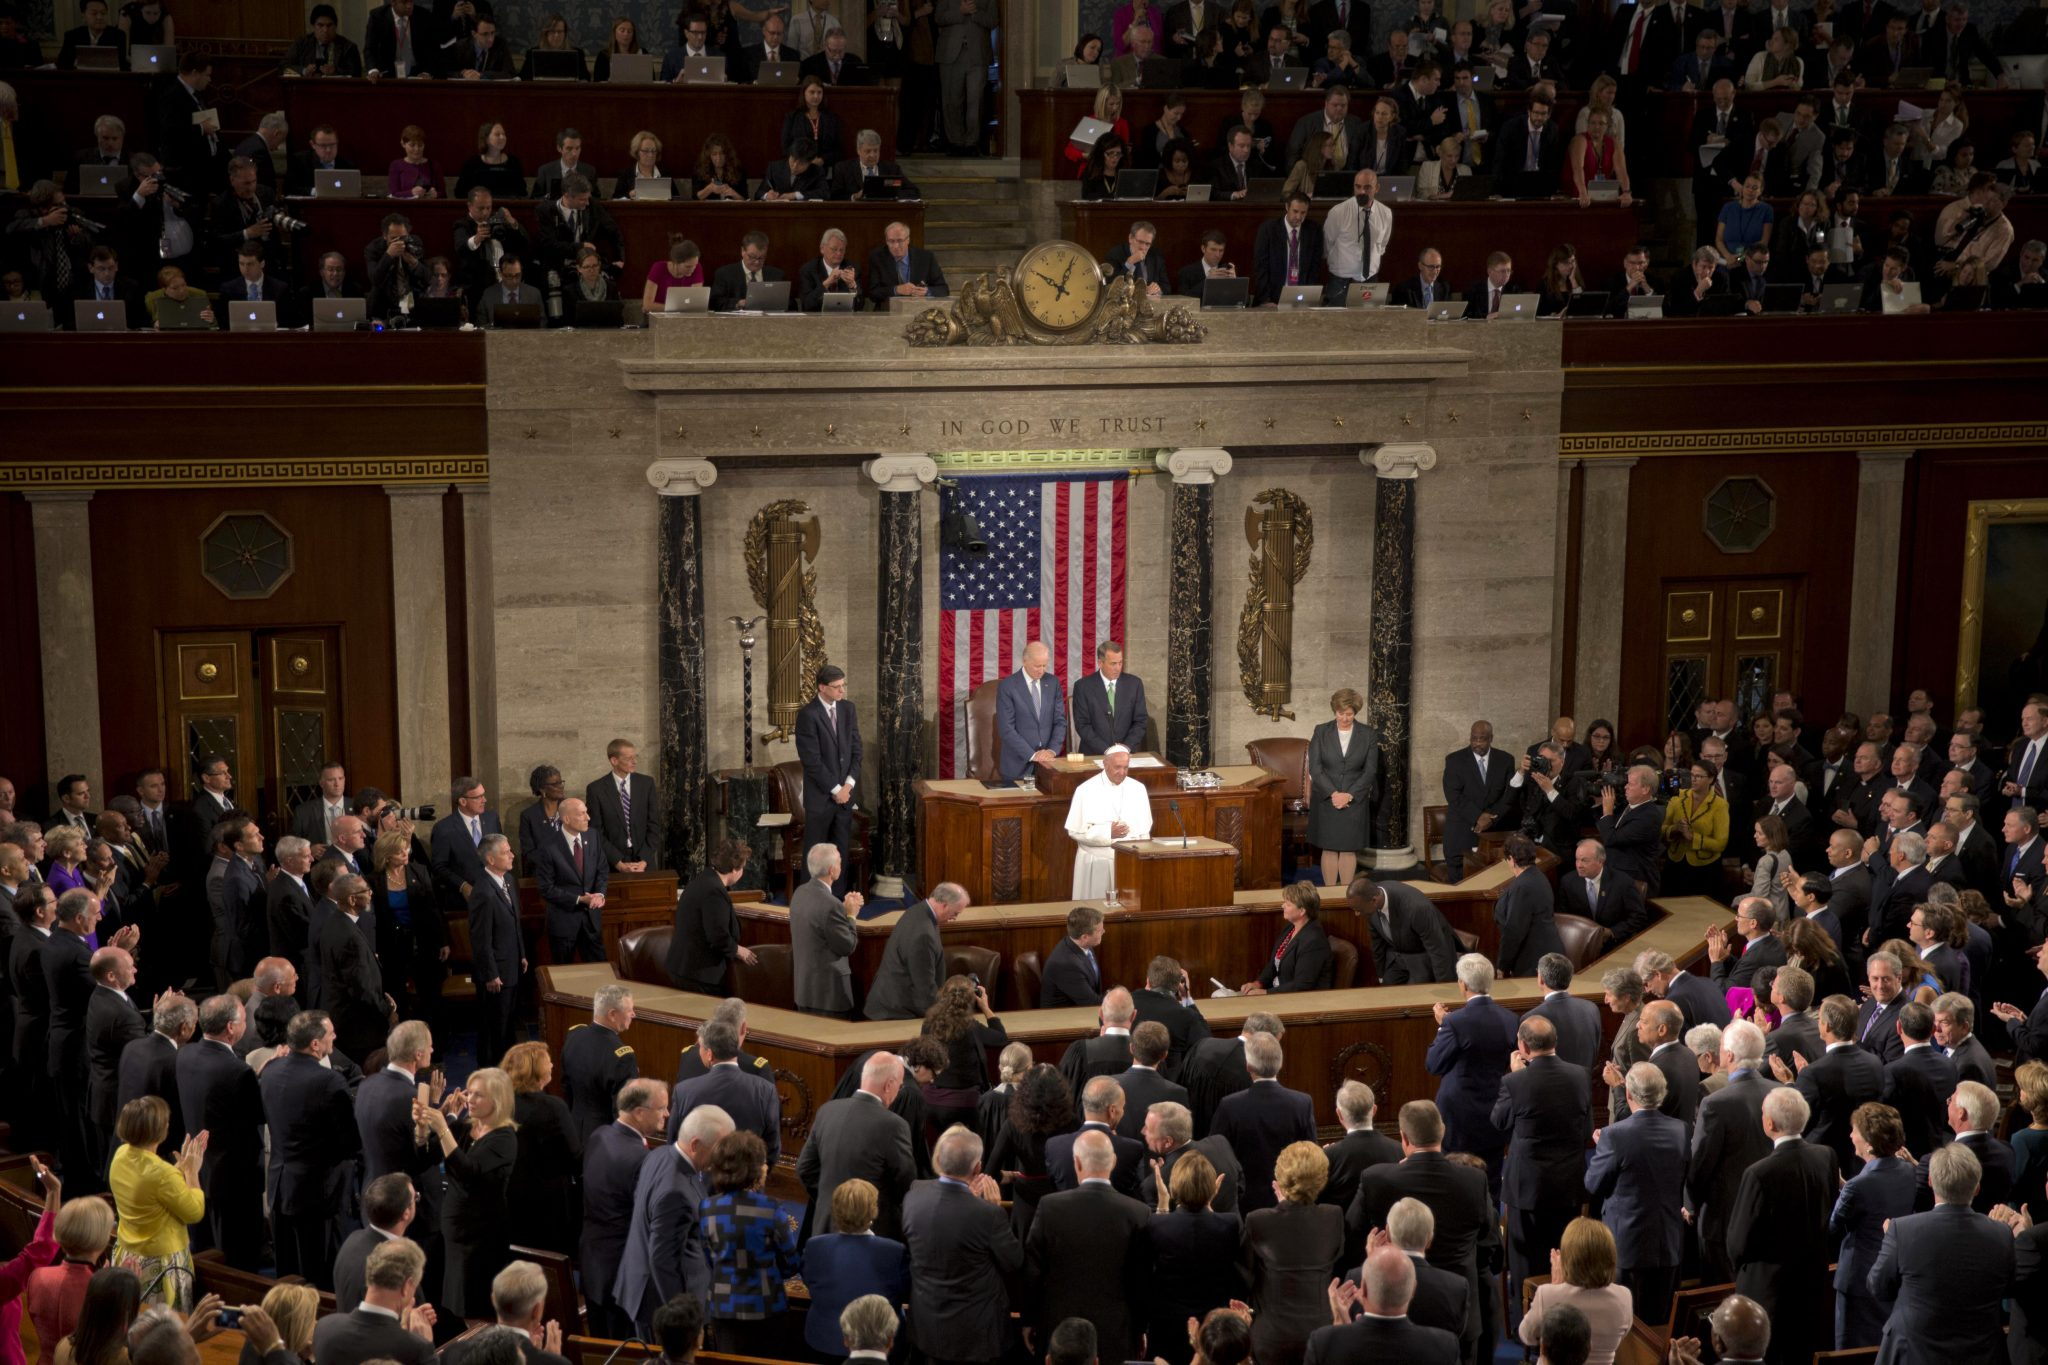 AP US POPE FRANCIS CONGRESS A USA DC